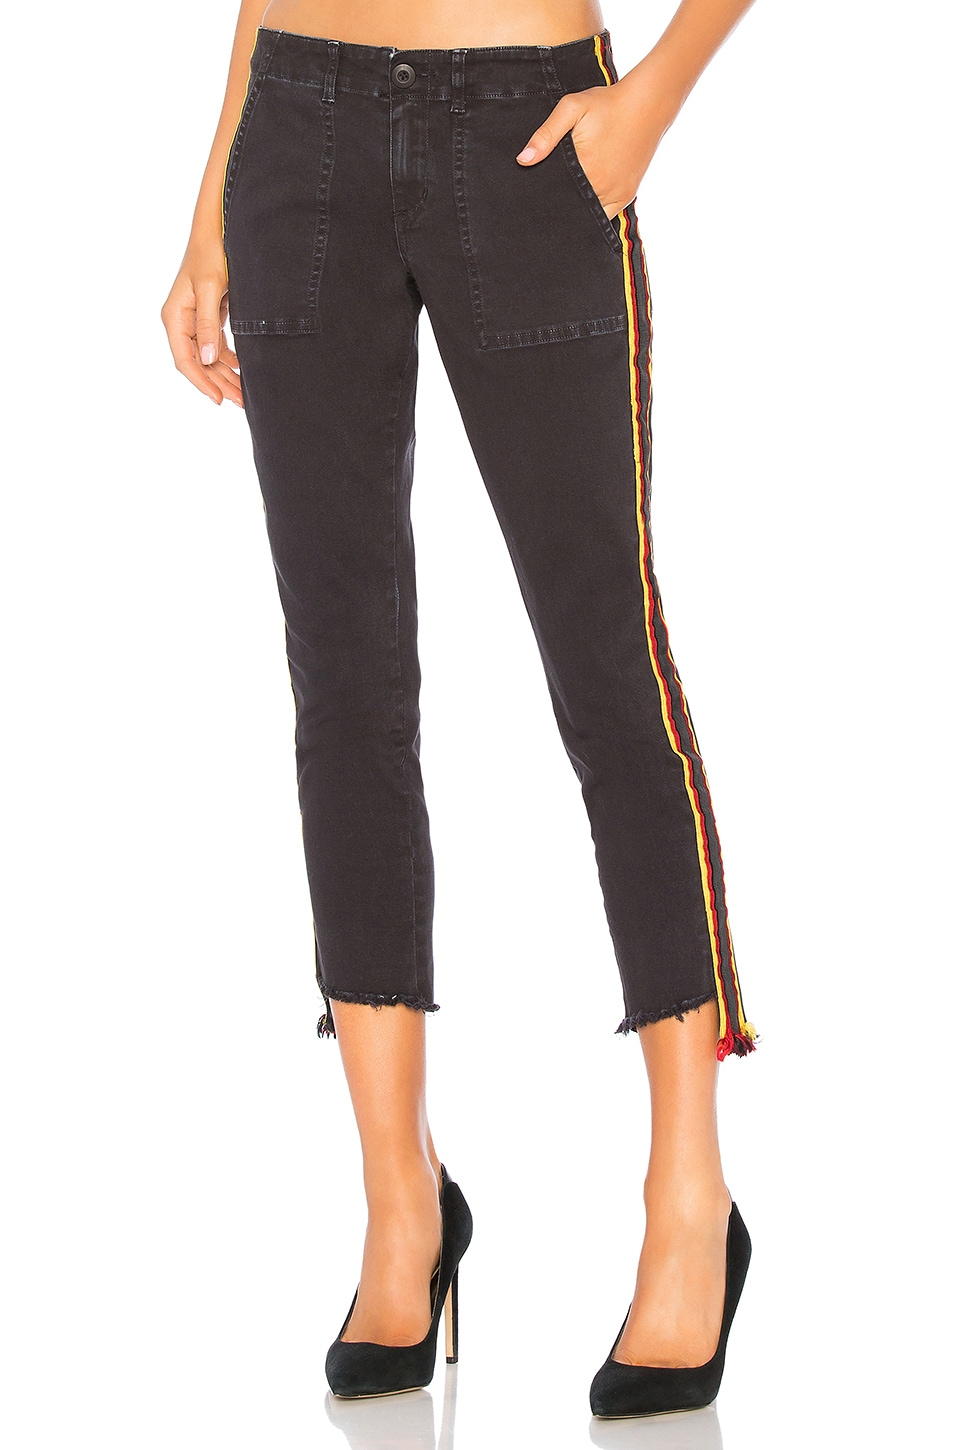 Pam & Gela Uniform Side Stripe Pant in Vintage Black